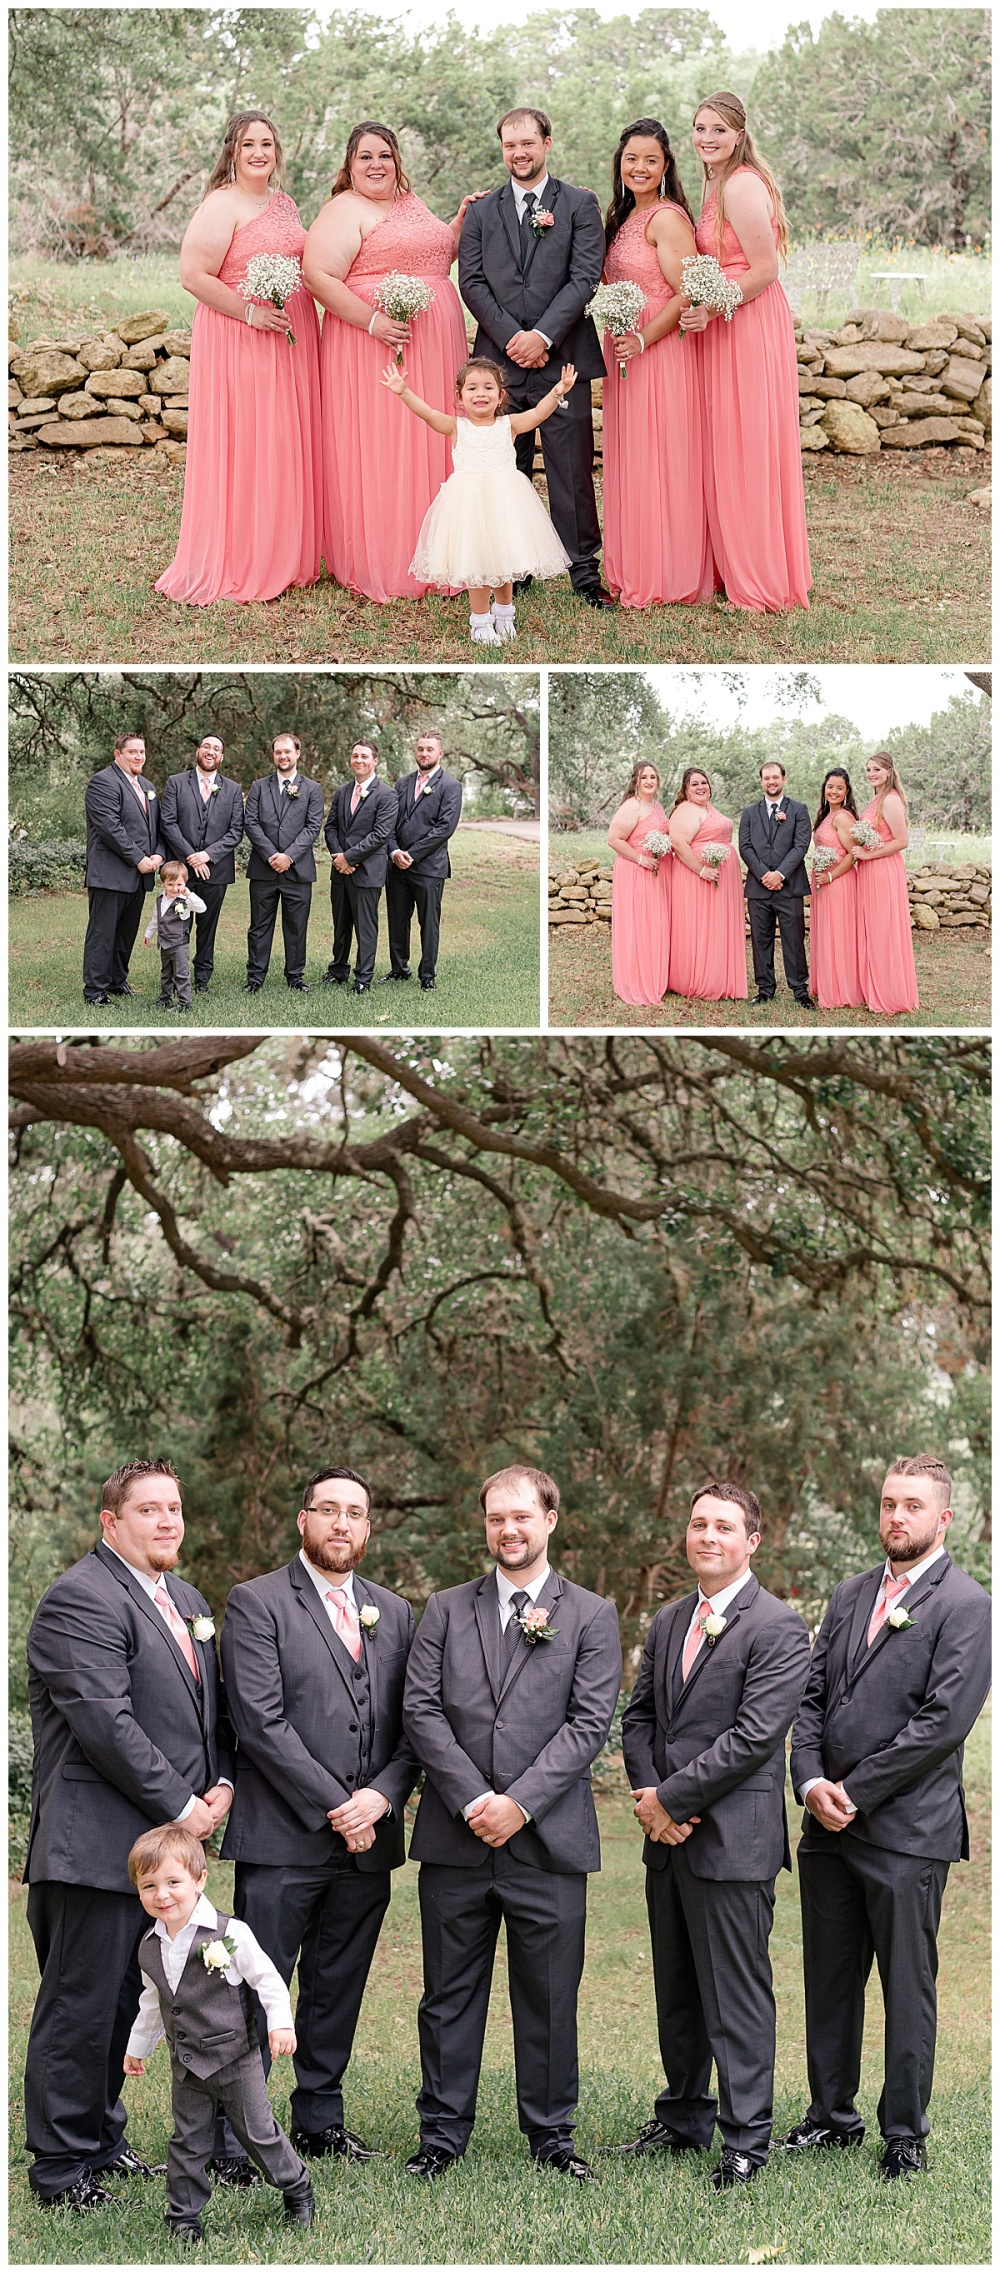 Michael-Tiffany-Wedding-New-Braunfels-Texas-Canyon-Lake-Cabins-and-Cottages-Carly-Barton-Photography_0029.jpg